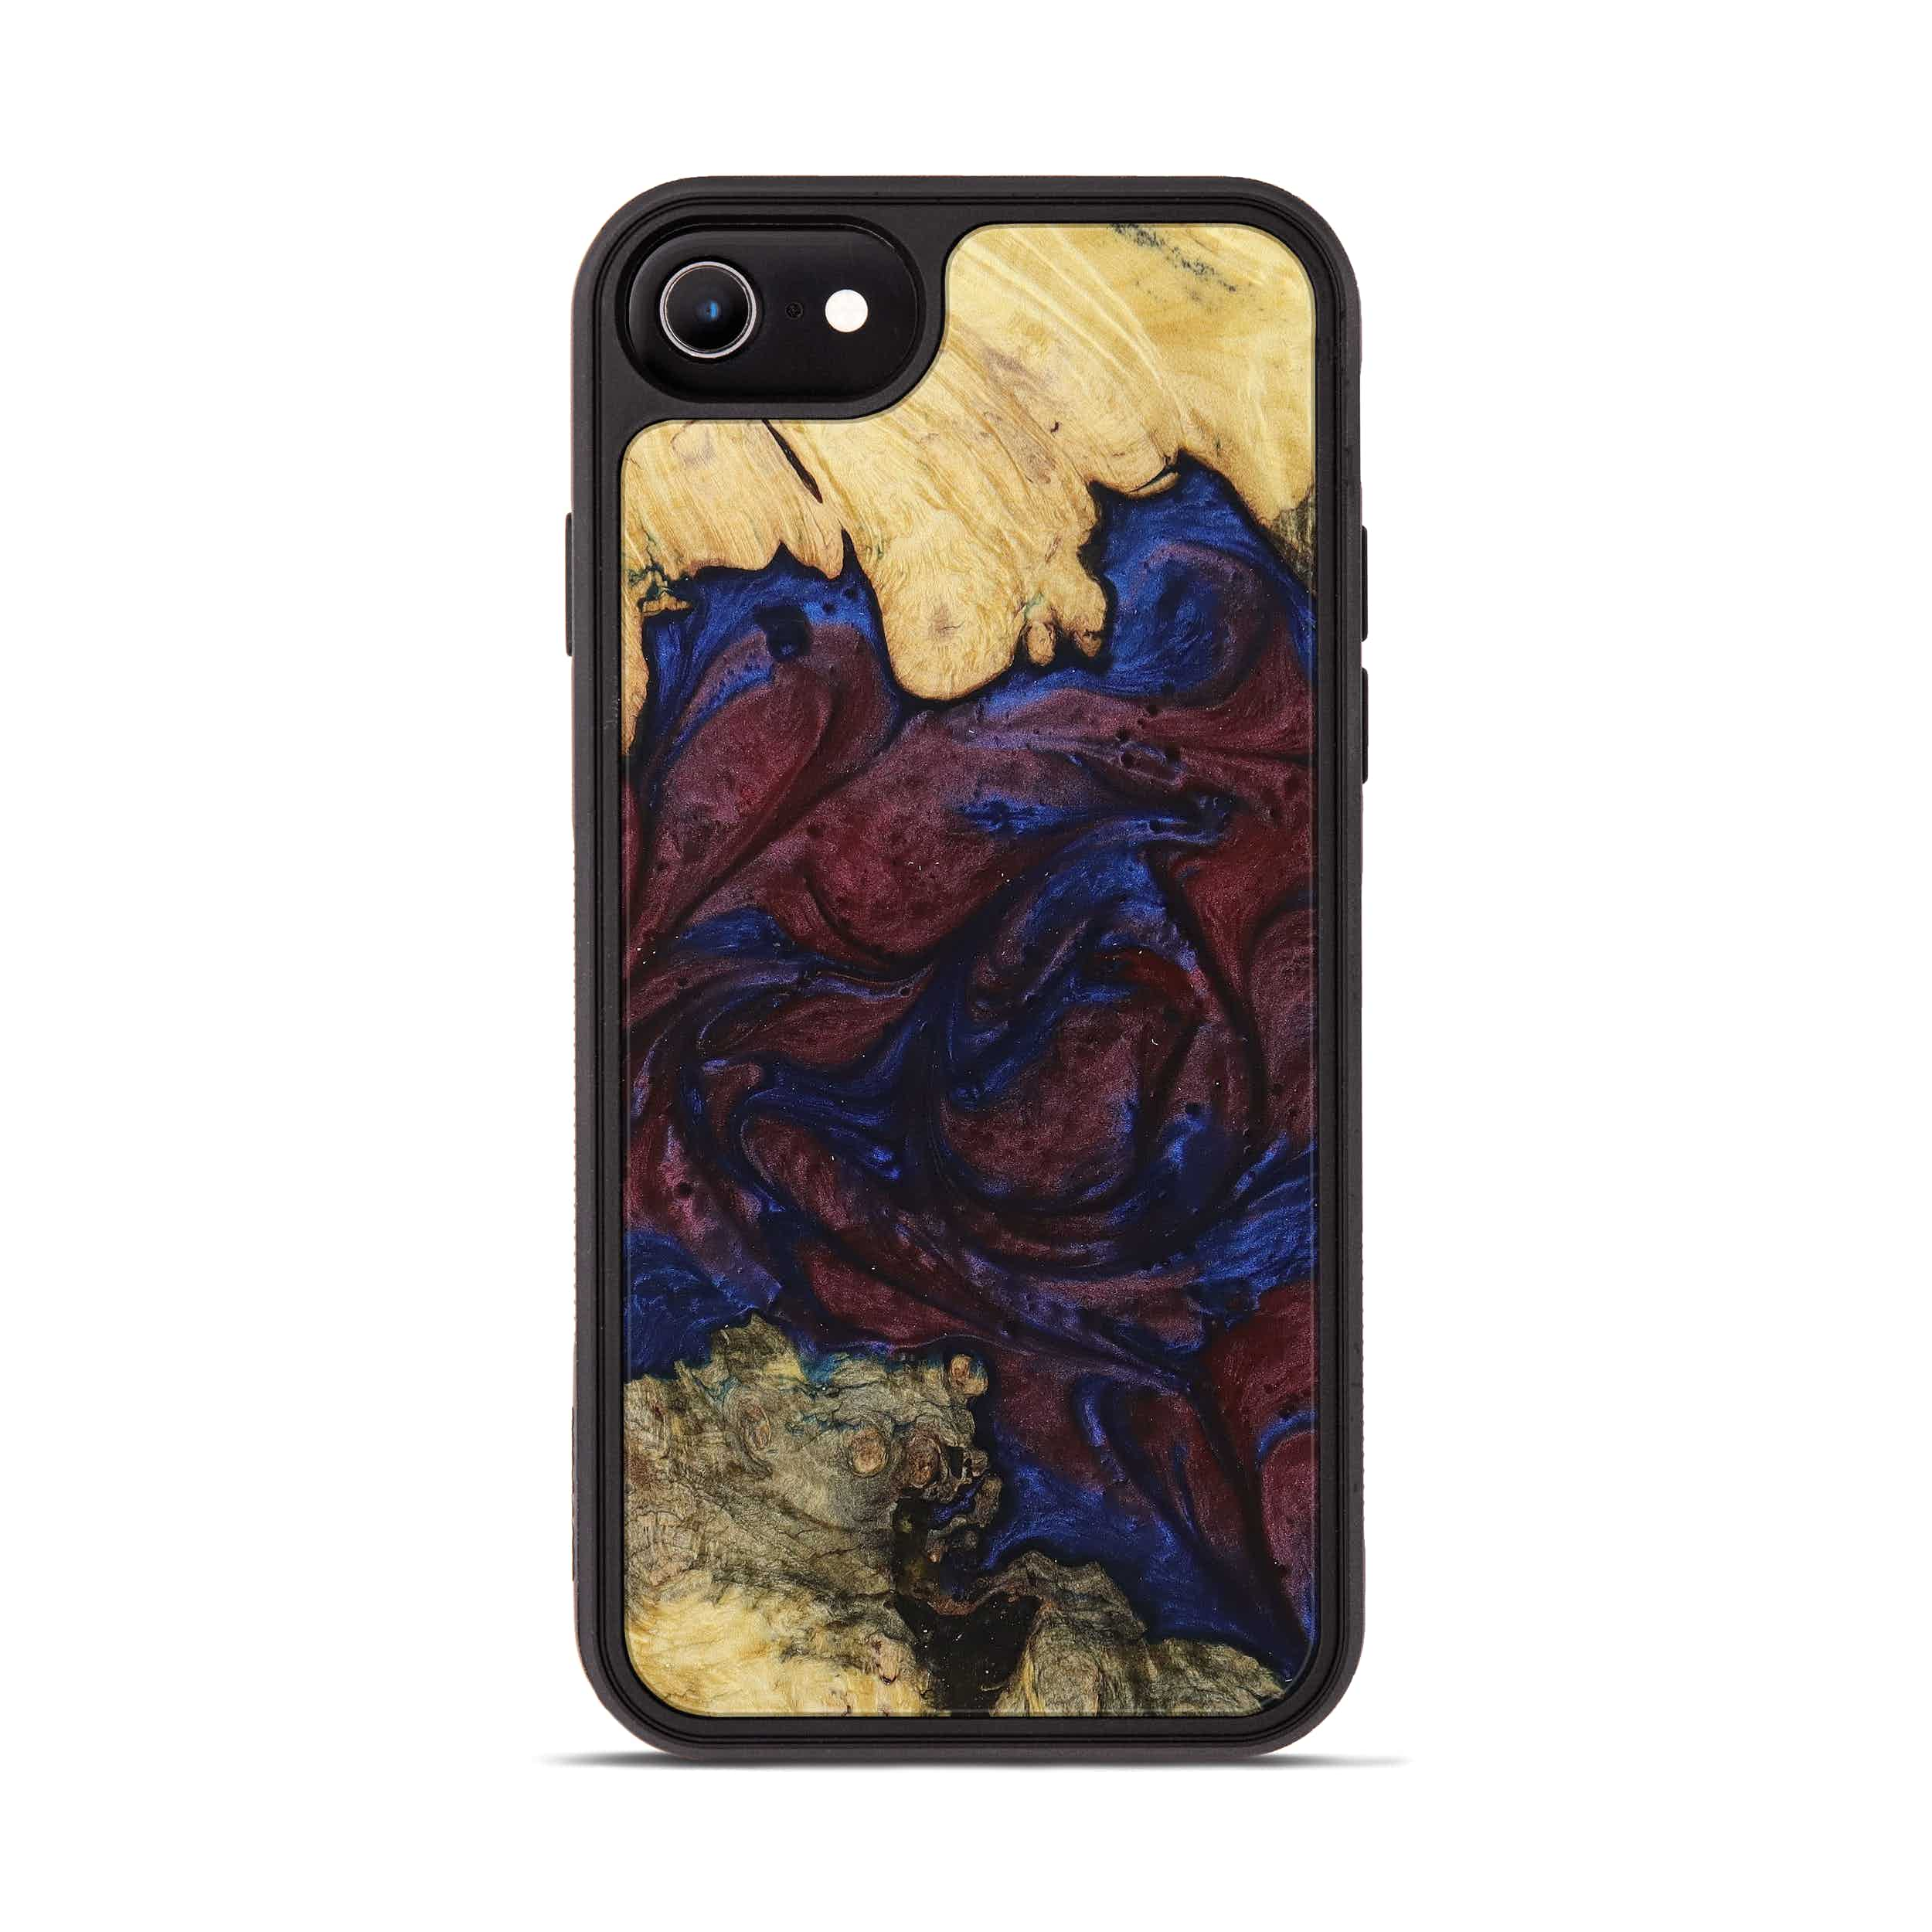 iPhone 8 Wood+Resin Phone Case - Asnat (Blue & Red, 394803)